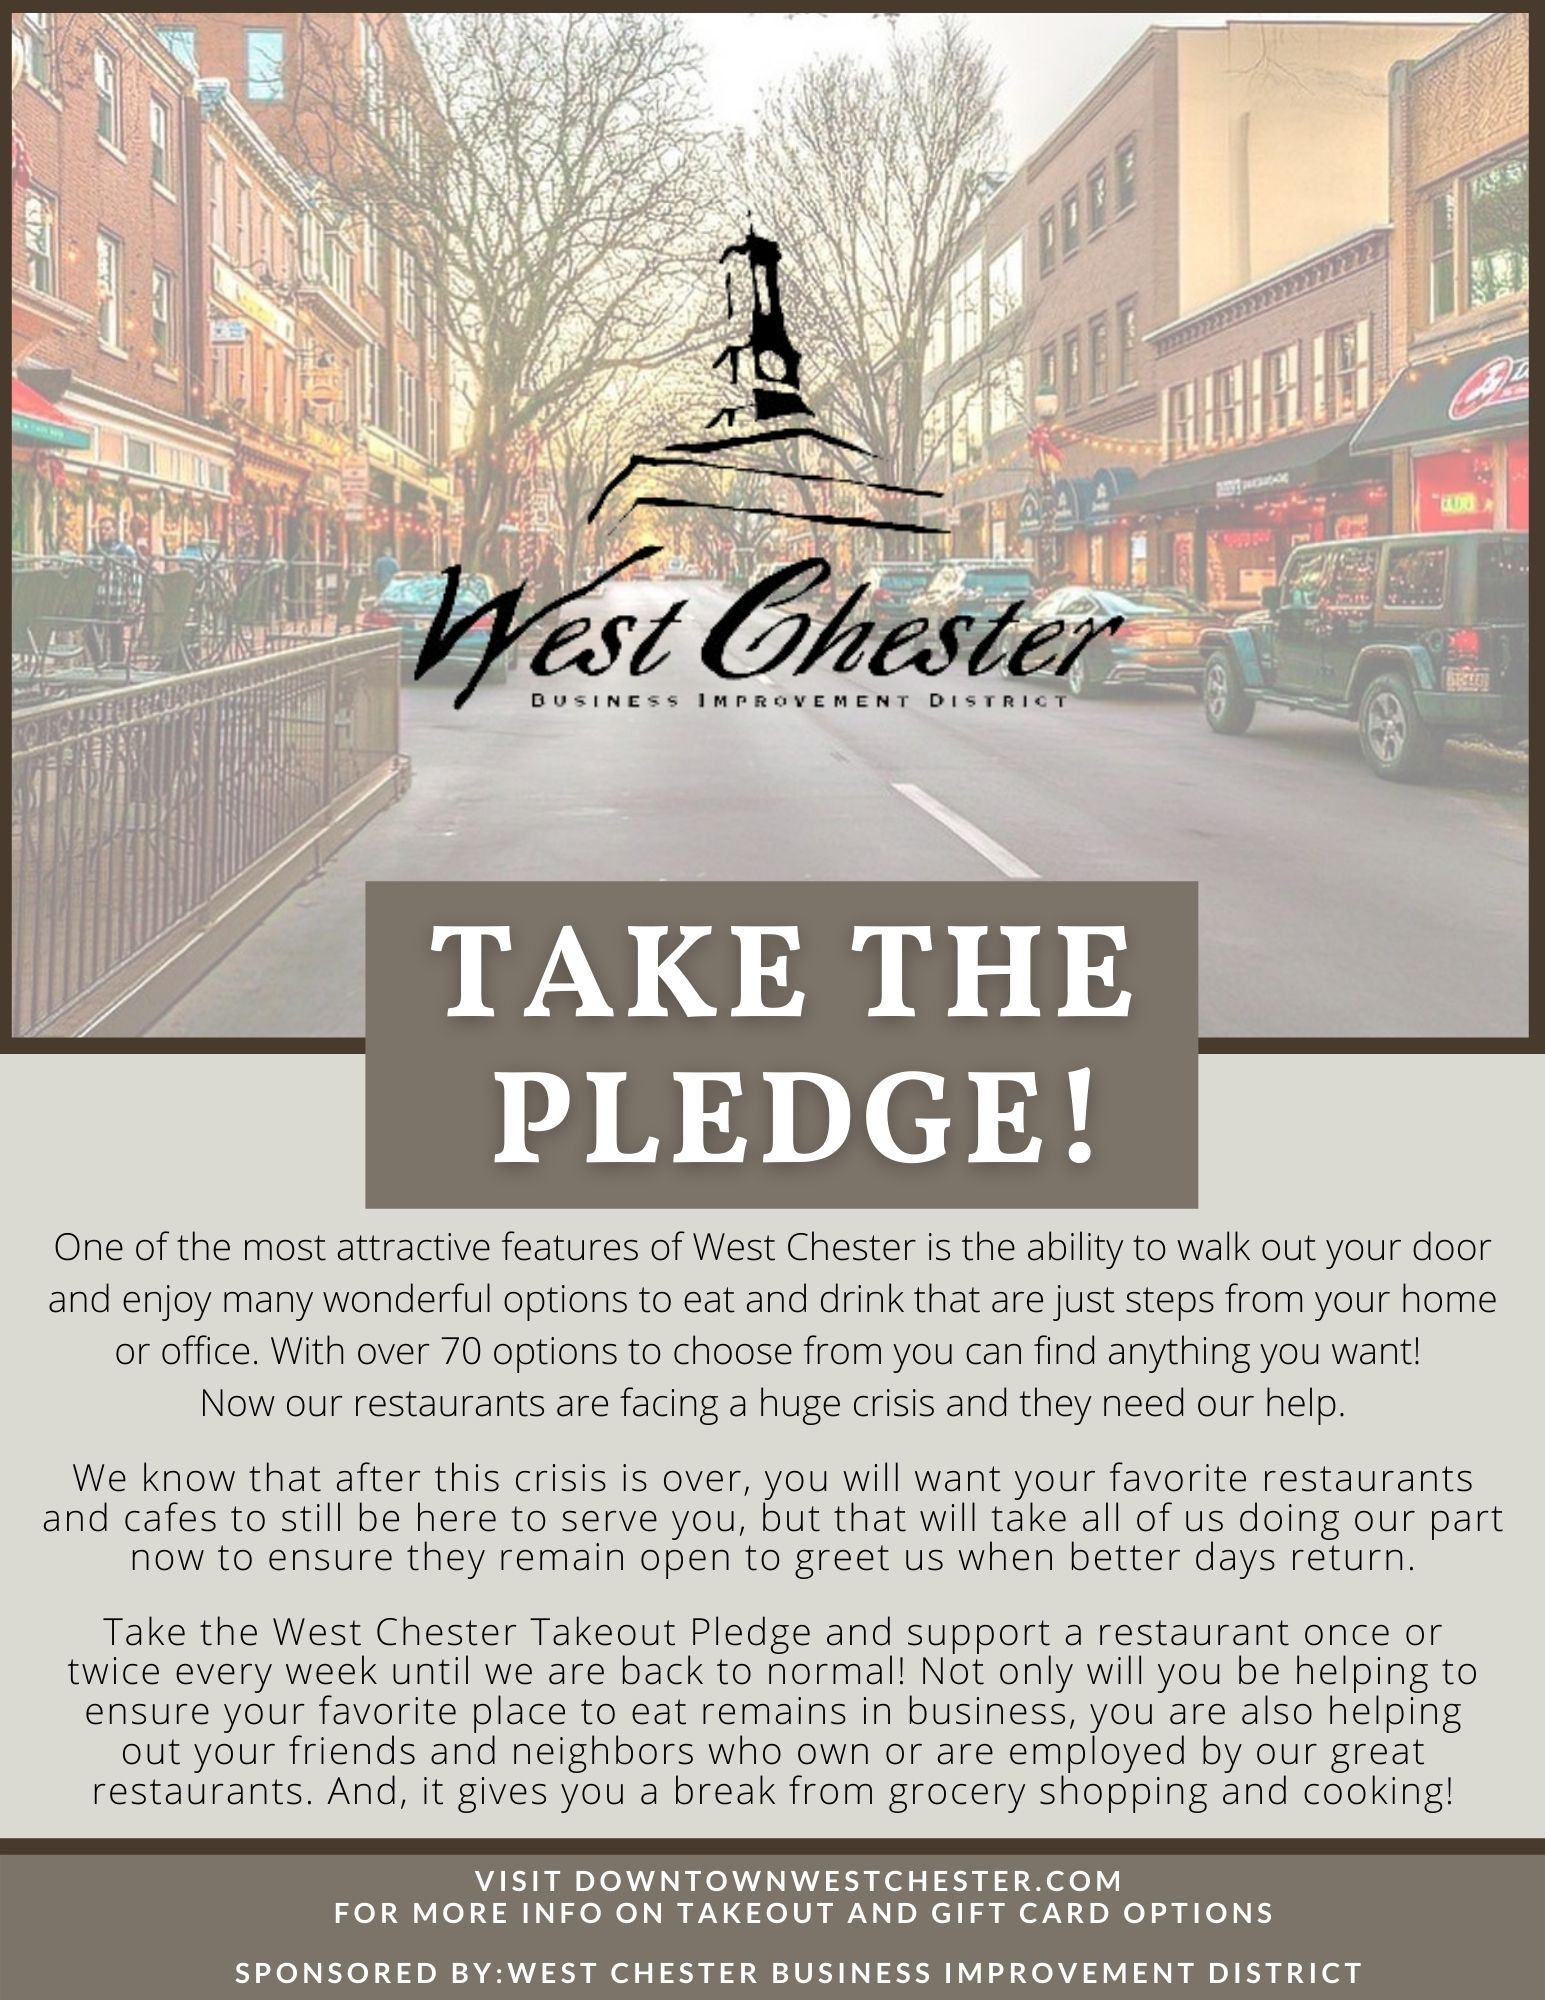 Takeout Pledge Image